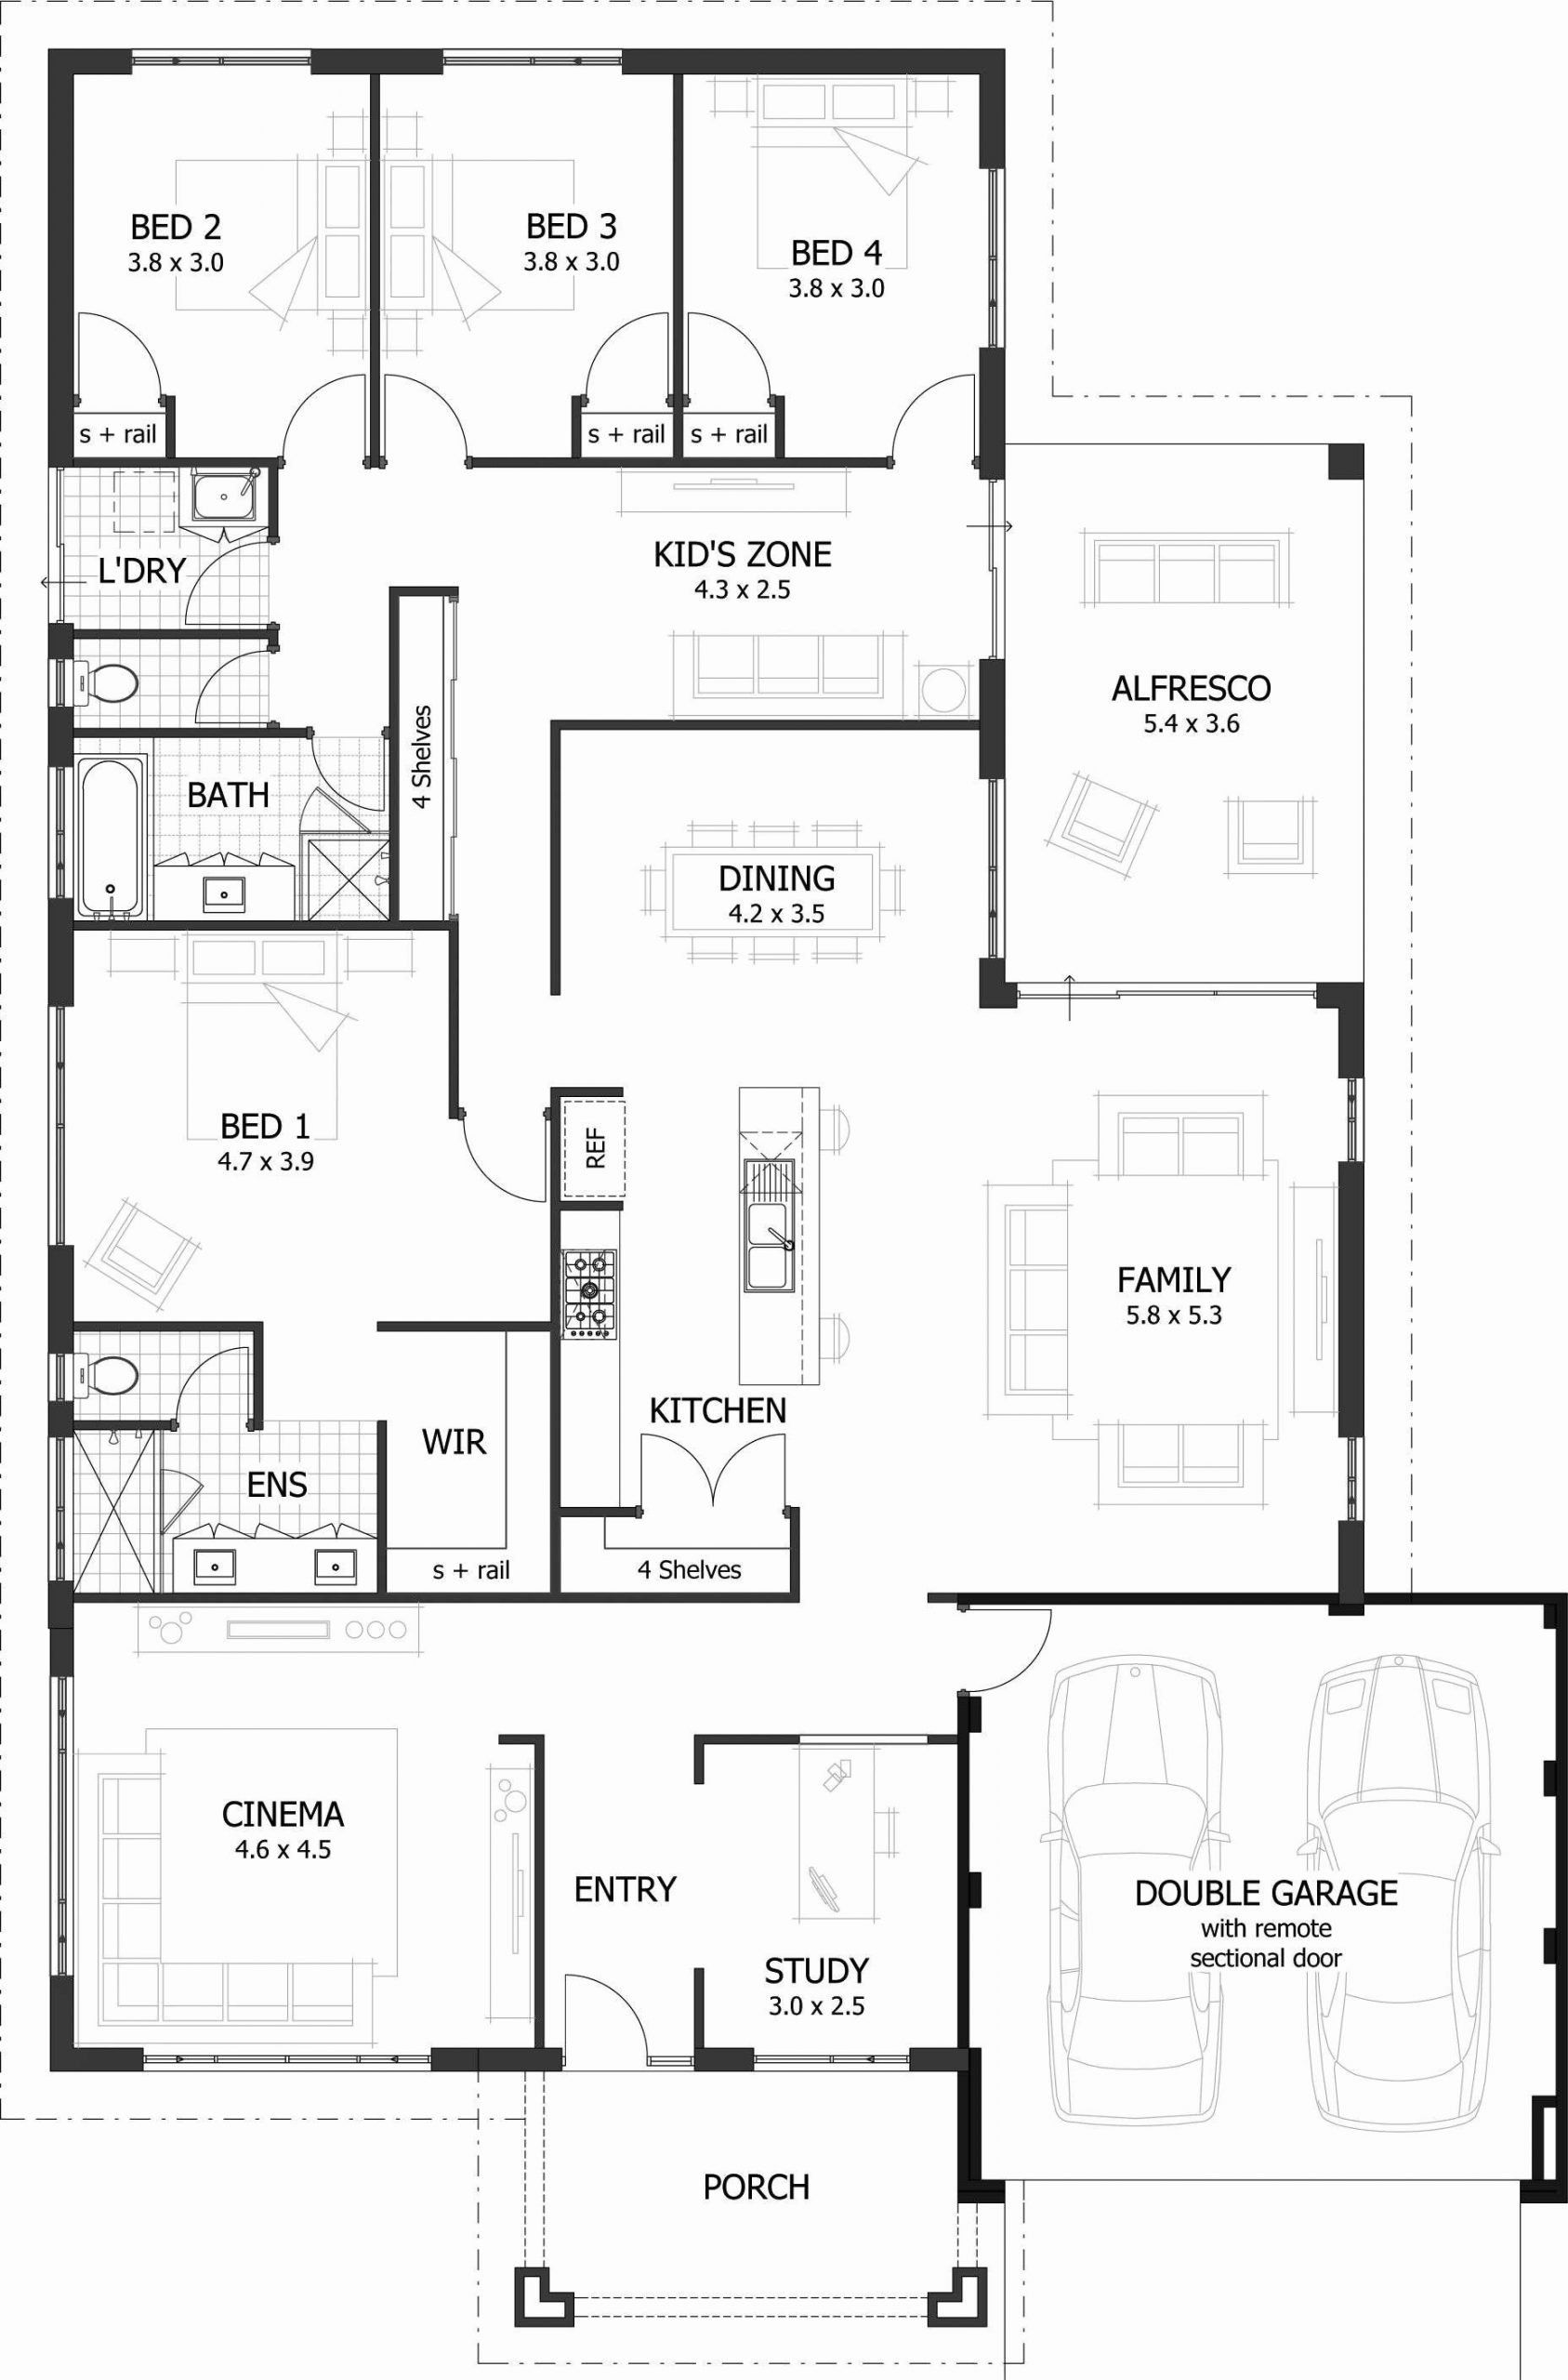 Cheap Guest House Plans New 56 Fresh Cheap Guest House Plans S Daftar Harga In 2020 Four Bedroom House Plans House Floor Plans 6 Bedroom House Plans